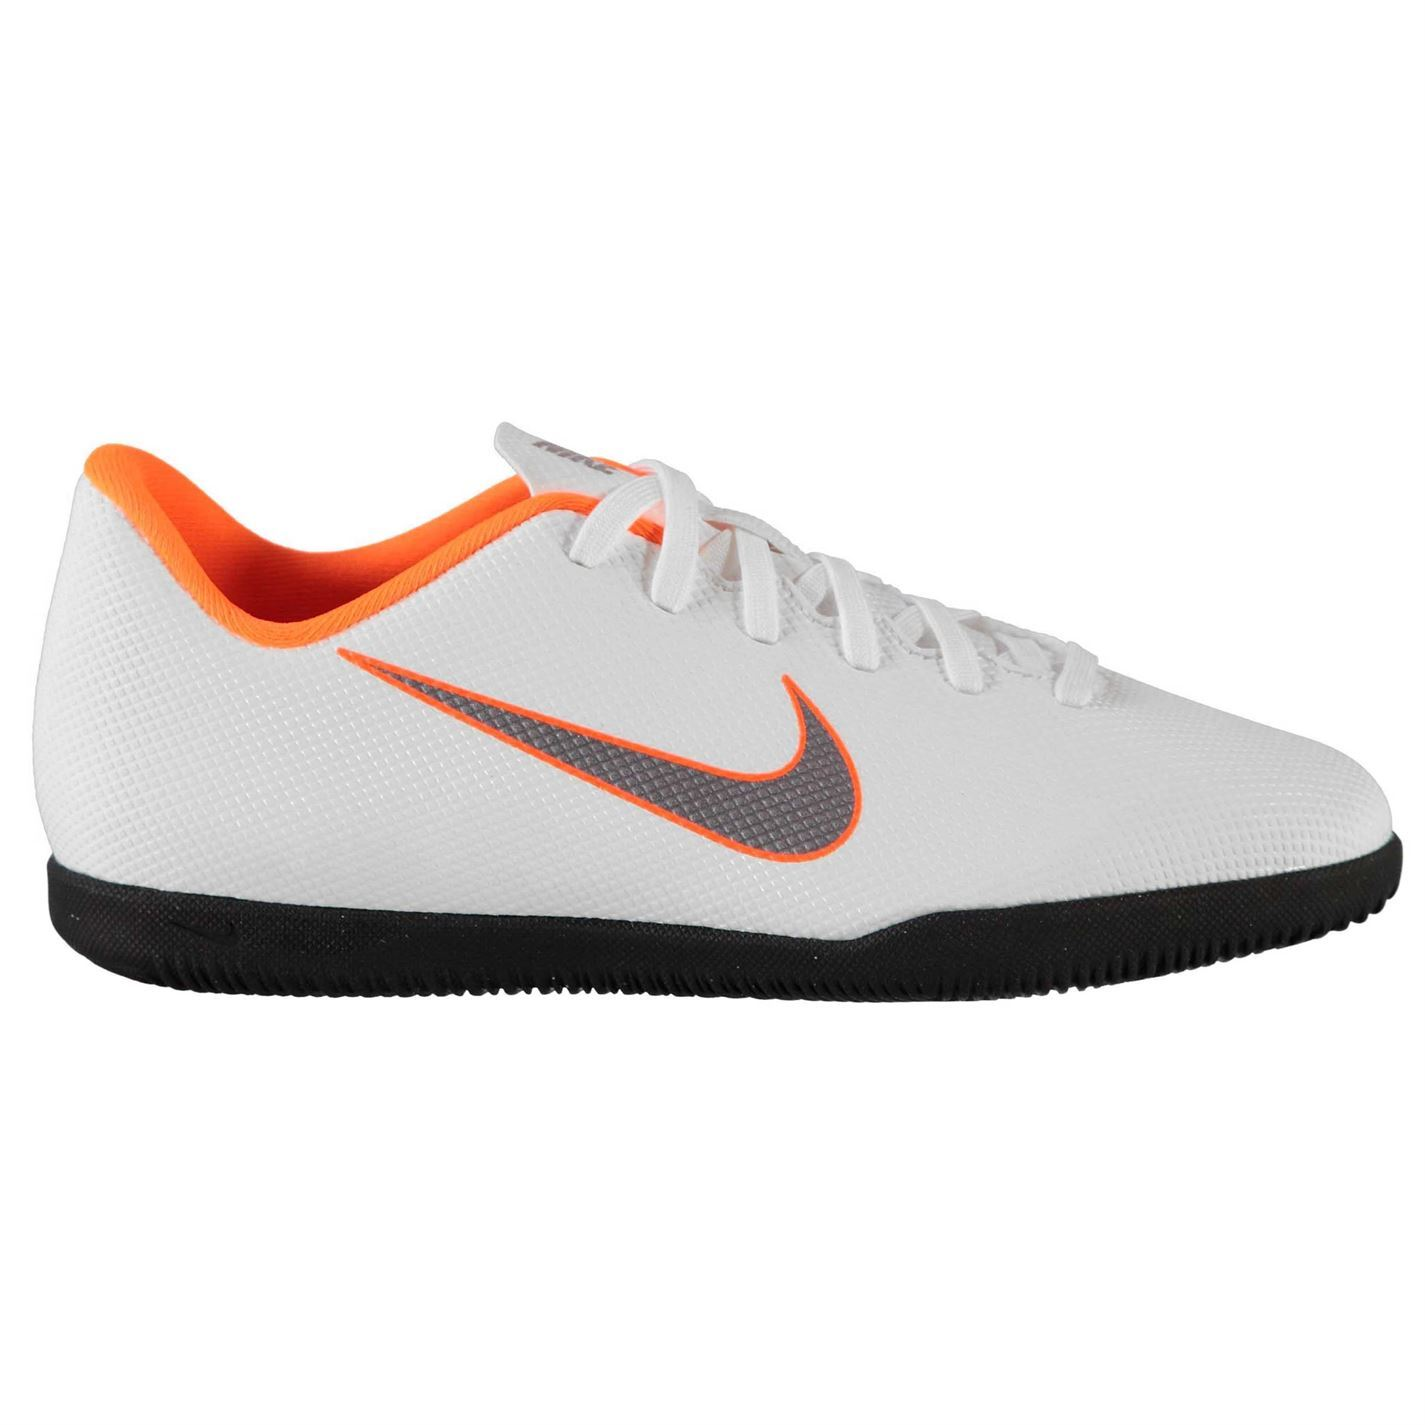 08a4648ebf6f8 Soccer Club Indoor Vapor Juniors Mercurial Football Trainers Nike qE0tpwq